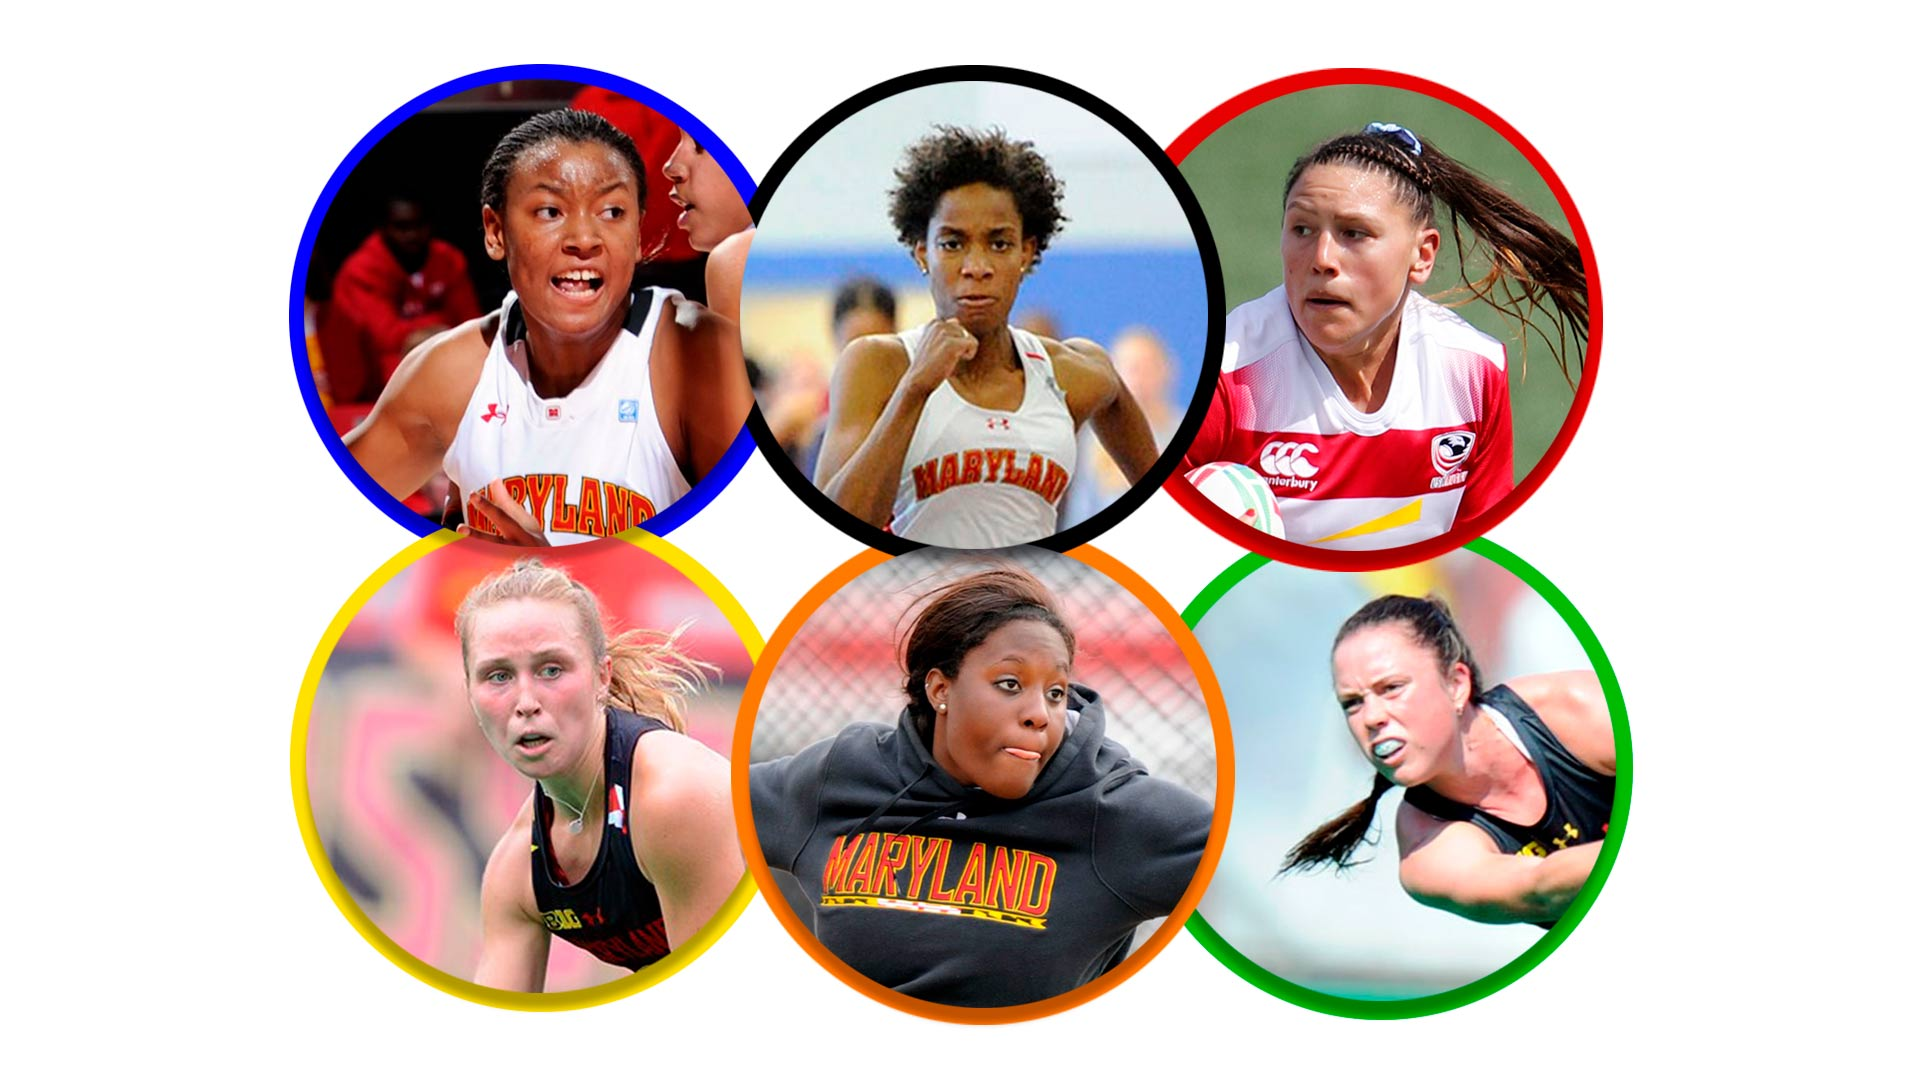 Clockwise from top left, Terps Diandra Tchatchouang, Thea LaFond, Abby Gustaitis, Grace Balsdon, Chioma Onyekwere and Nike Lorenz will compete in the Tokyo Olympics